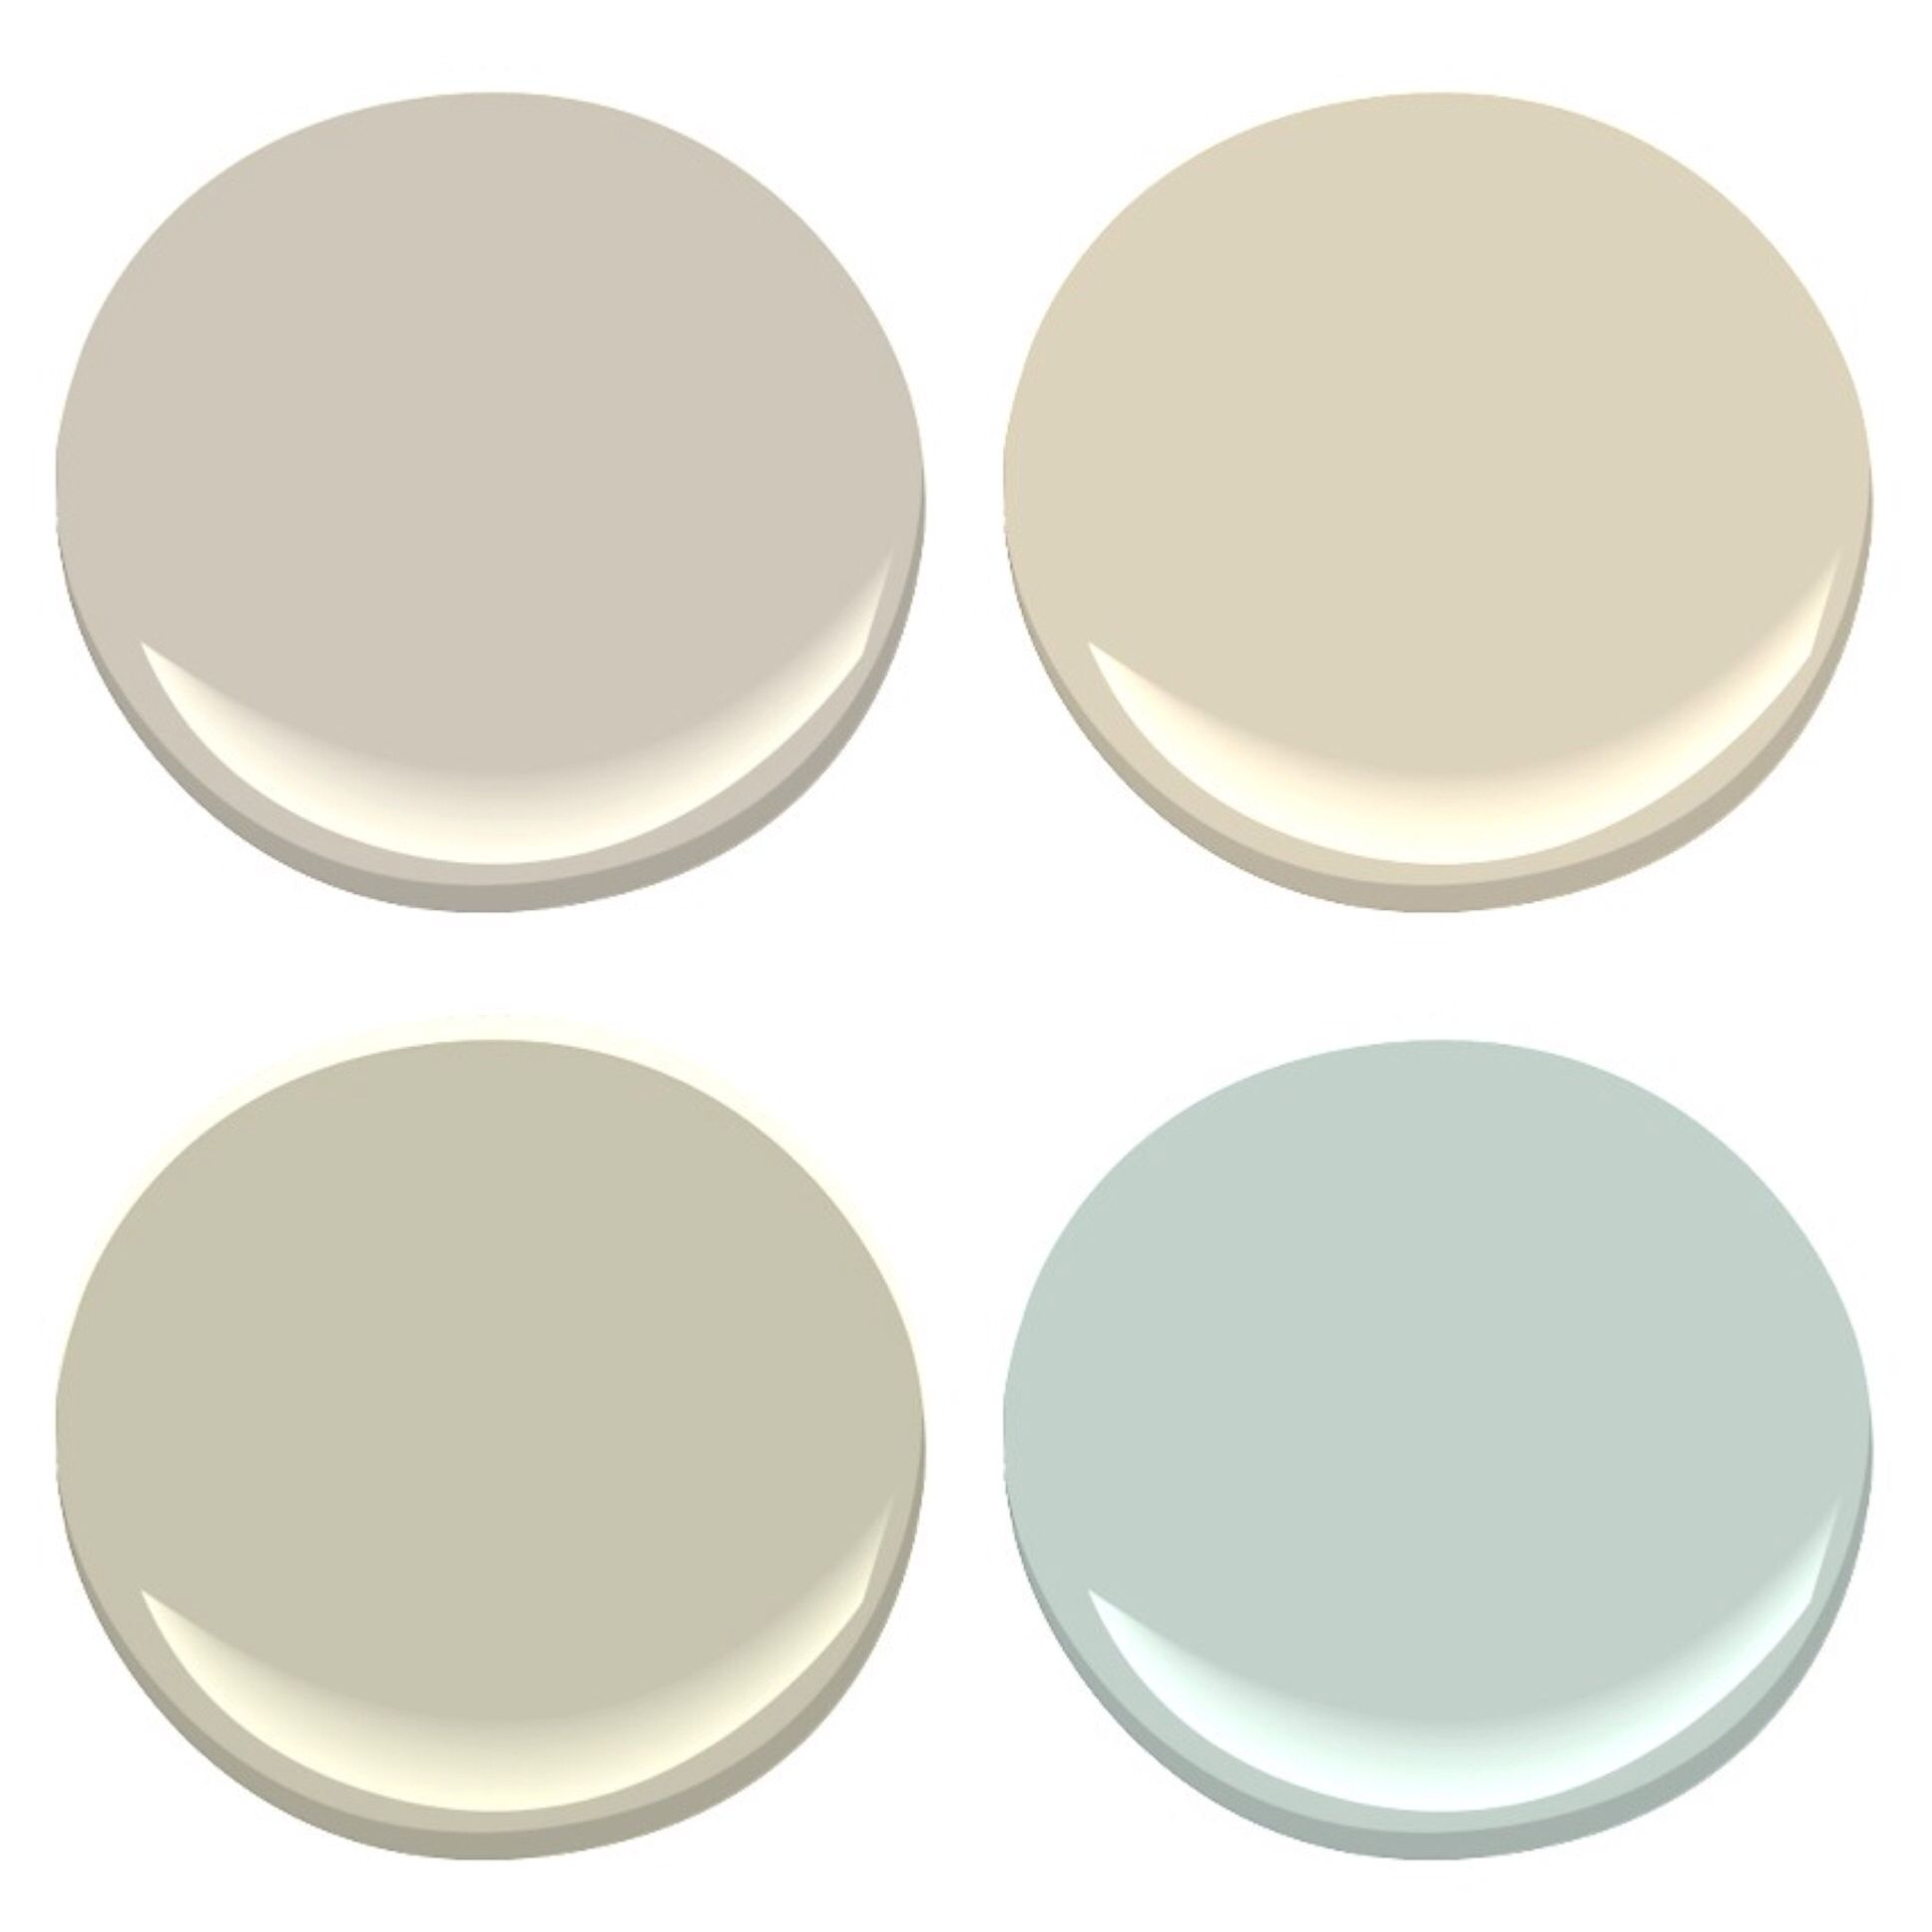 New House Neutral Paint Palette Benjamin Moore Revere Pewter Manchester Tan